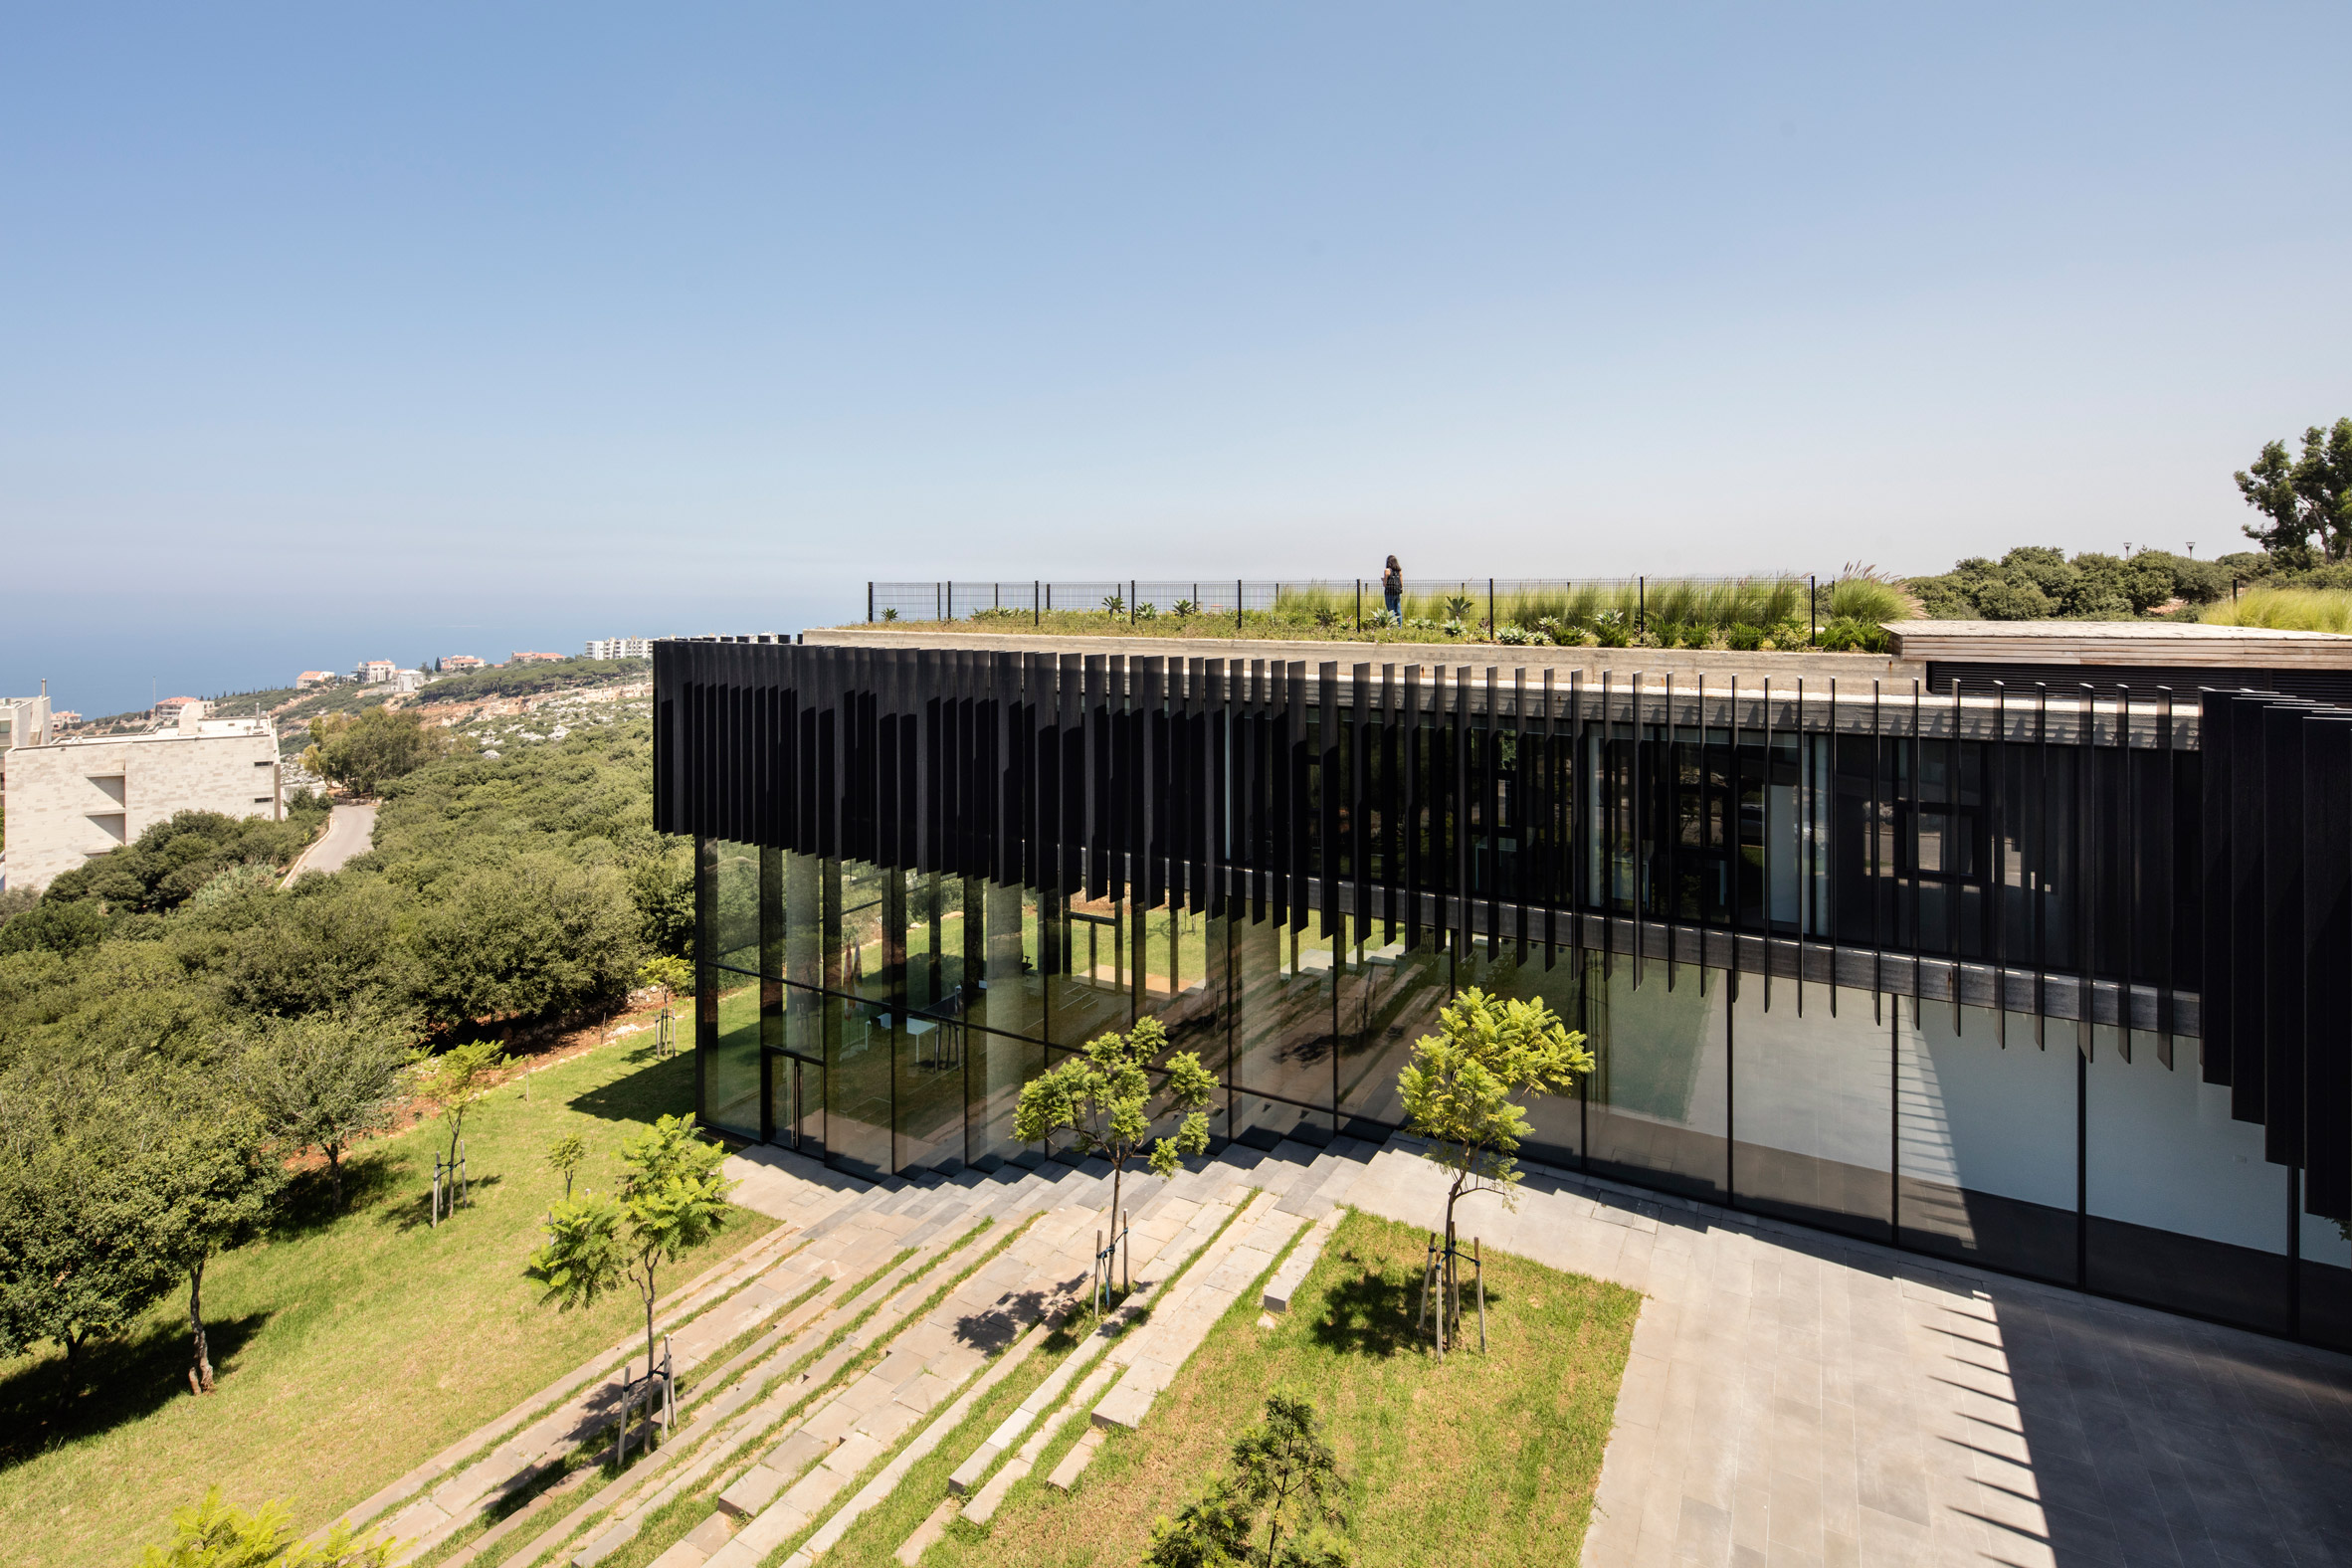 The Sheikh Nahyan Centre for Arabic Studies & Intercultural Dialogue (CASID), designed by local firm Fouad Samara Architects